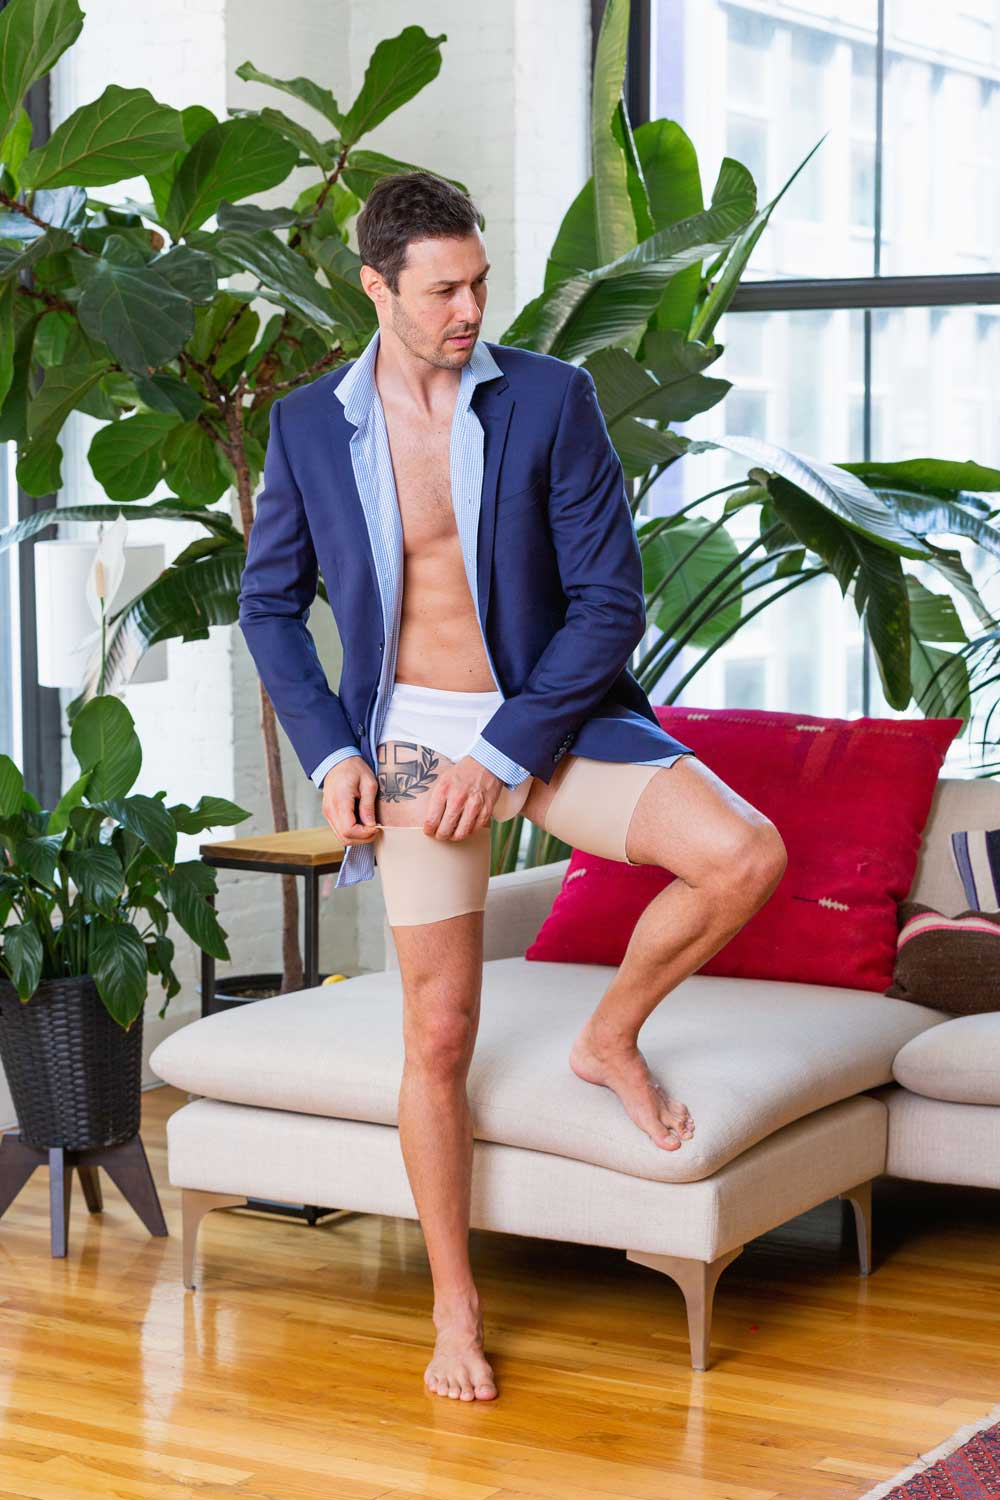 Comfortable anti chafing bands for men by Bandelettes.